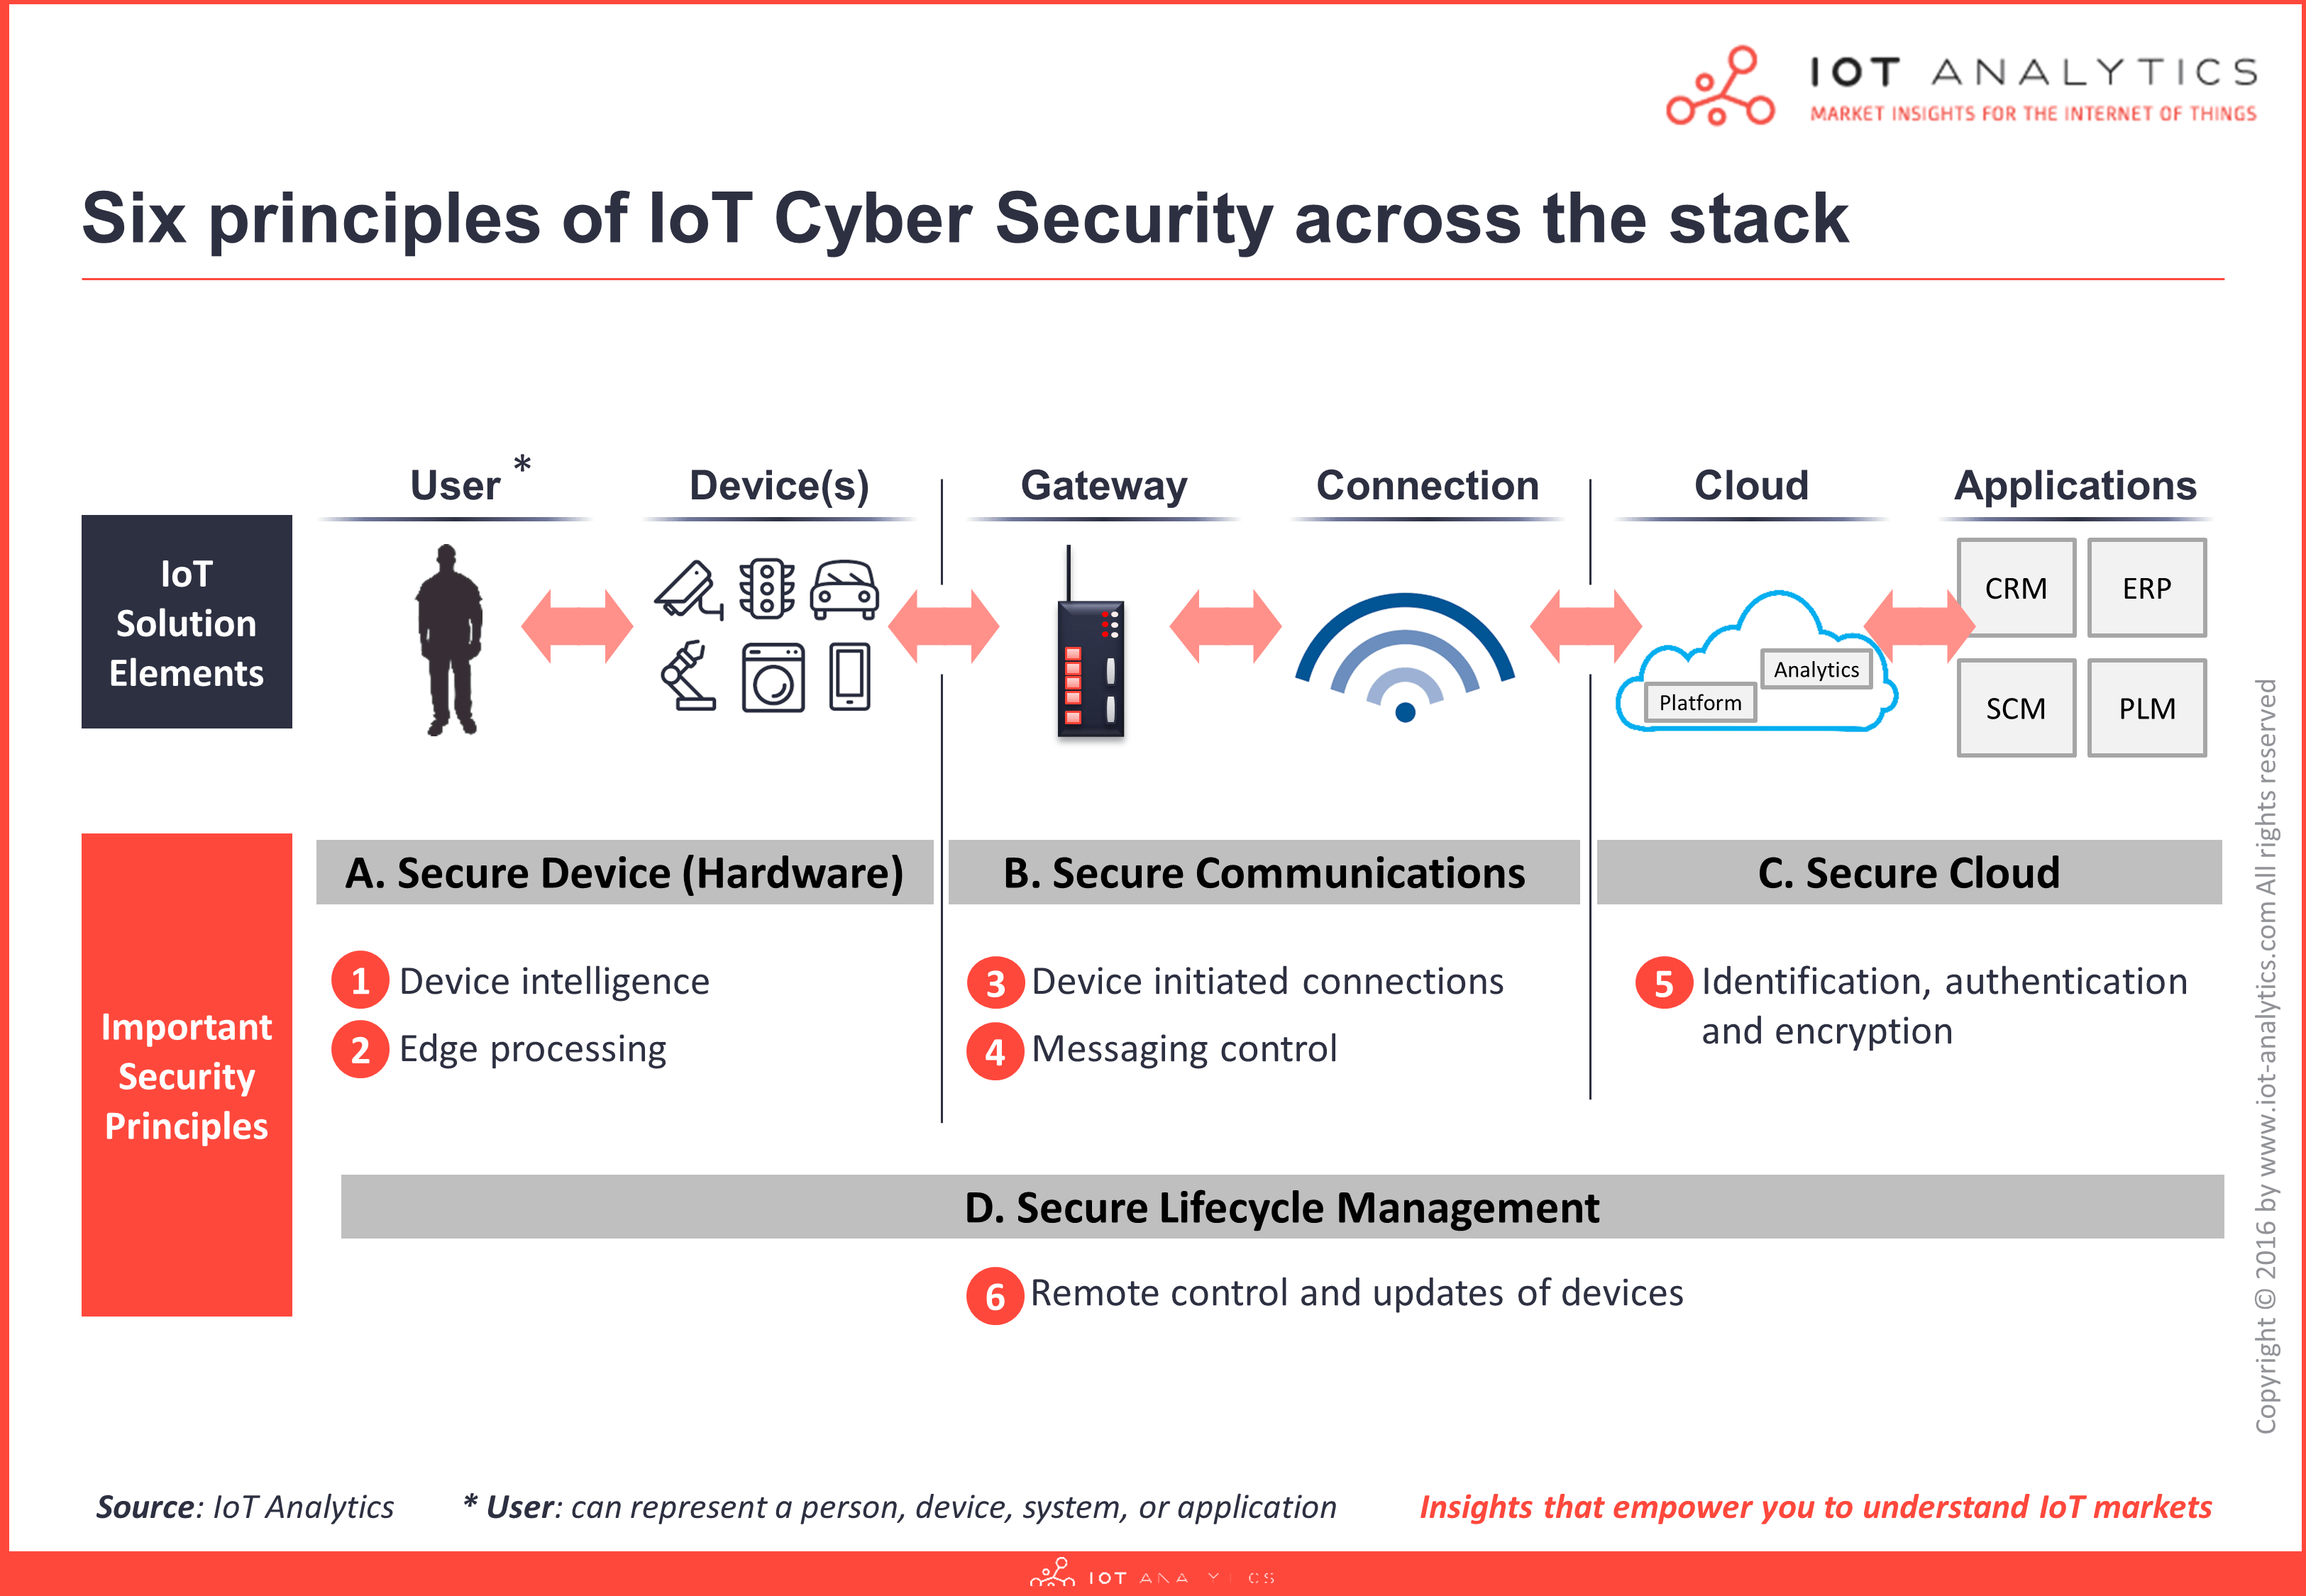 IoT Security Architecture - 6 Principles